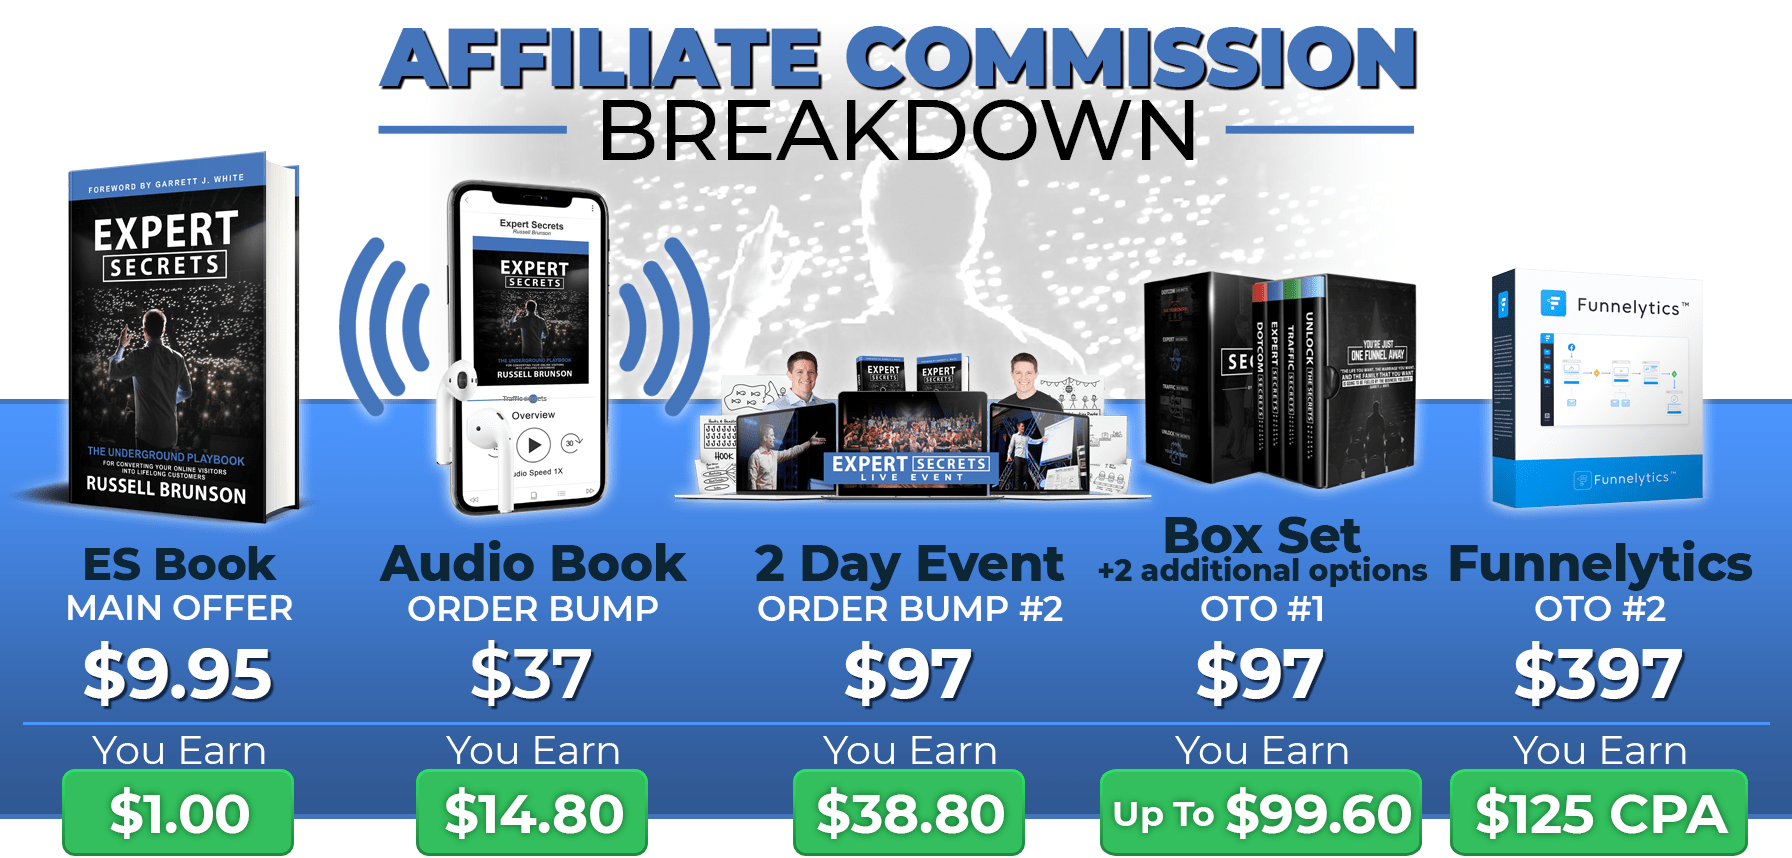 Expert Secrets Affiliate Commission Breakdown